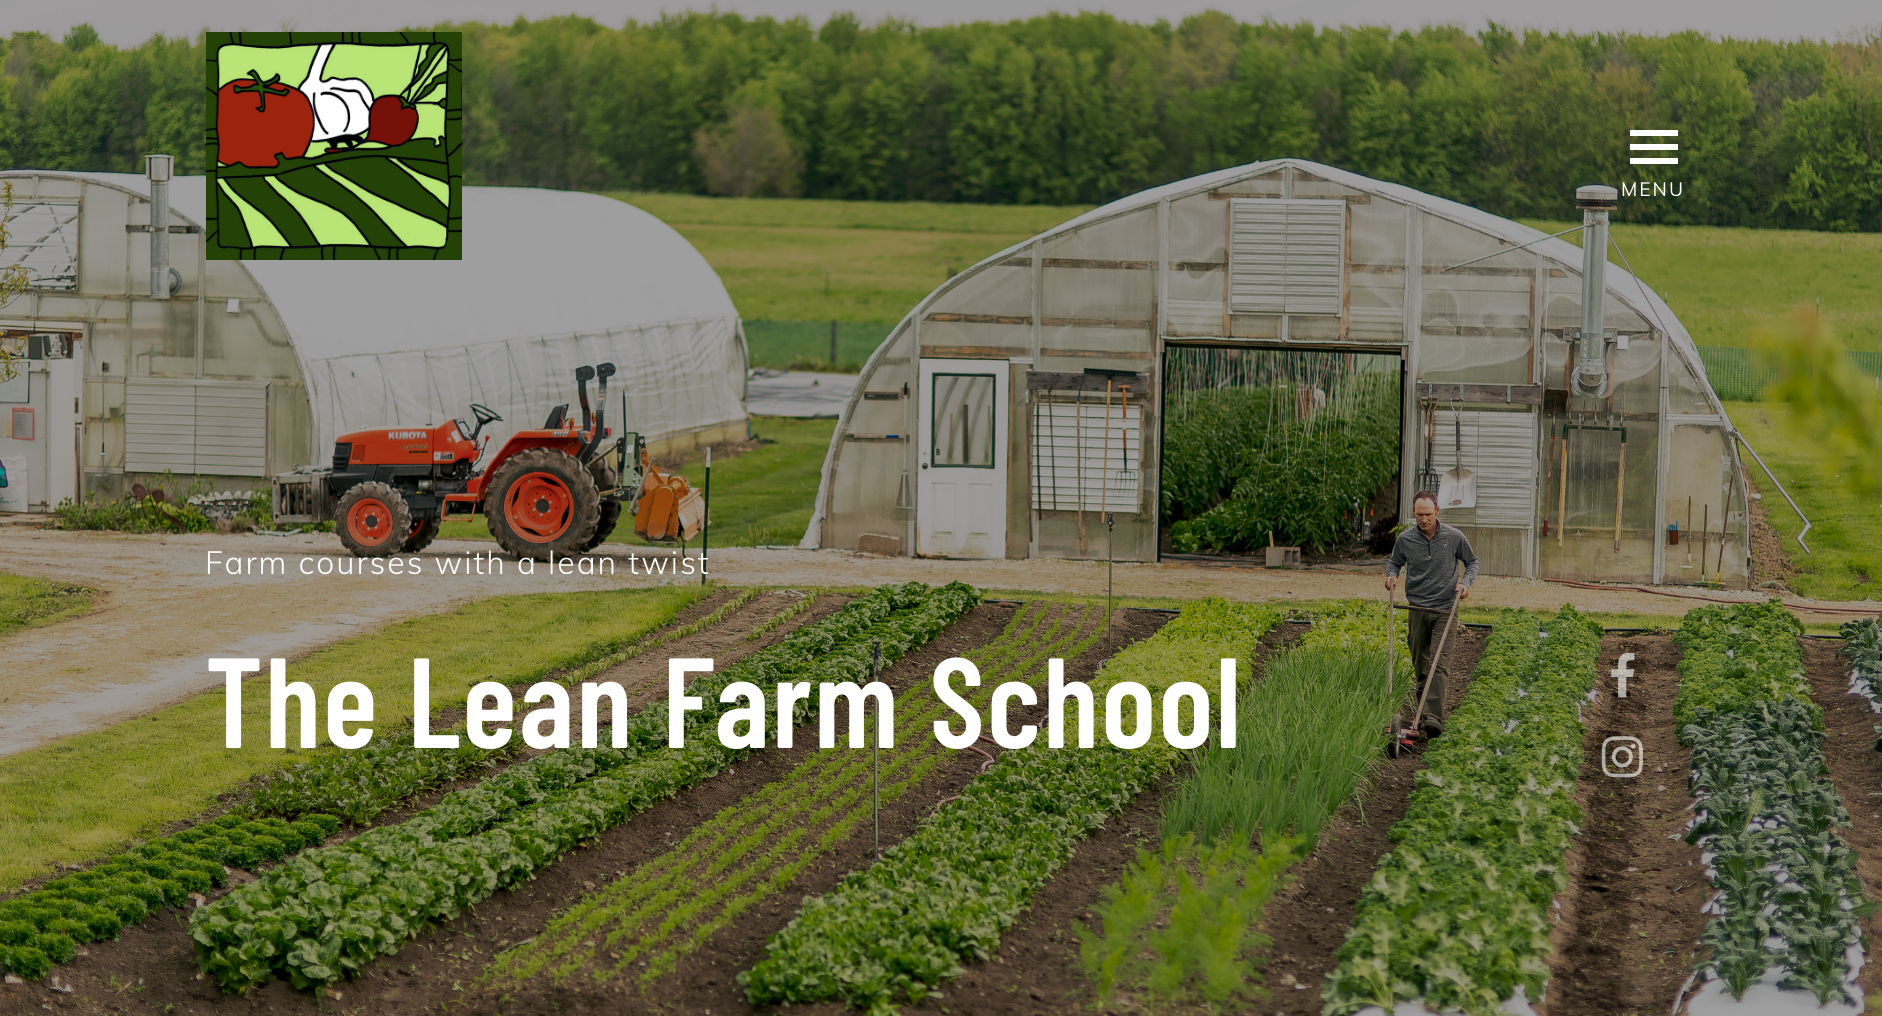 Ben Hartman, author of The Lean Farm, is the nation's leading expert on lean systems thinking applied to the farm, and Clay Bottom Farm is recognized internationally for its sustainable and profitable farming model. Join our growing list of students in our lean farm school online course.Ben Hartman, author of The Lean Farm, is the nation's leading expert on lean systems thinking applied to the farm, and Clay Bottom Farm is recognized internationally for its sustainable and profitable farming model. Join our growing list of students in our lean farm school online course.